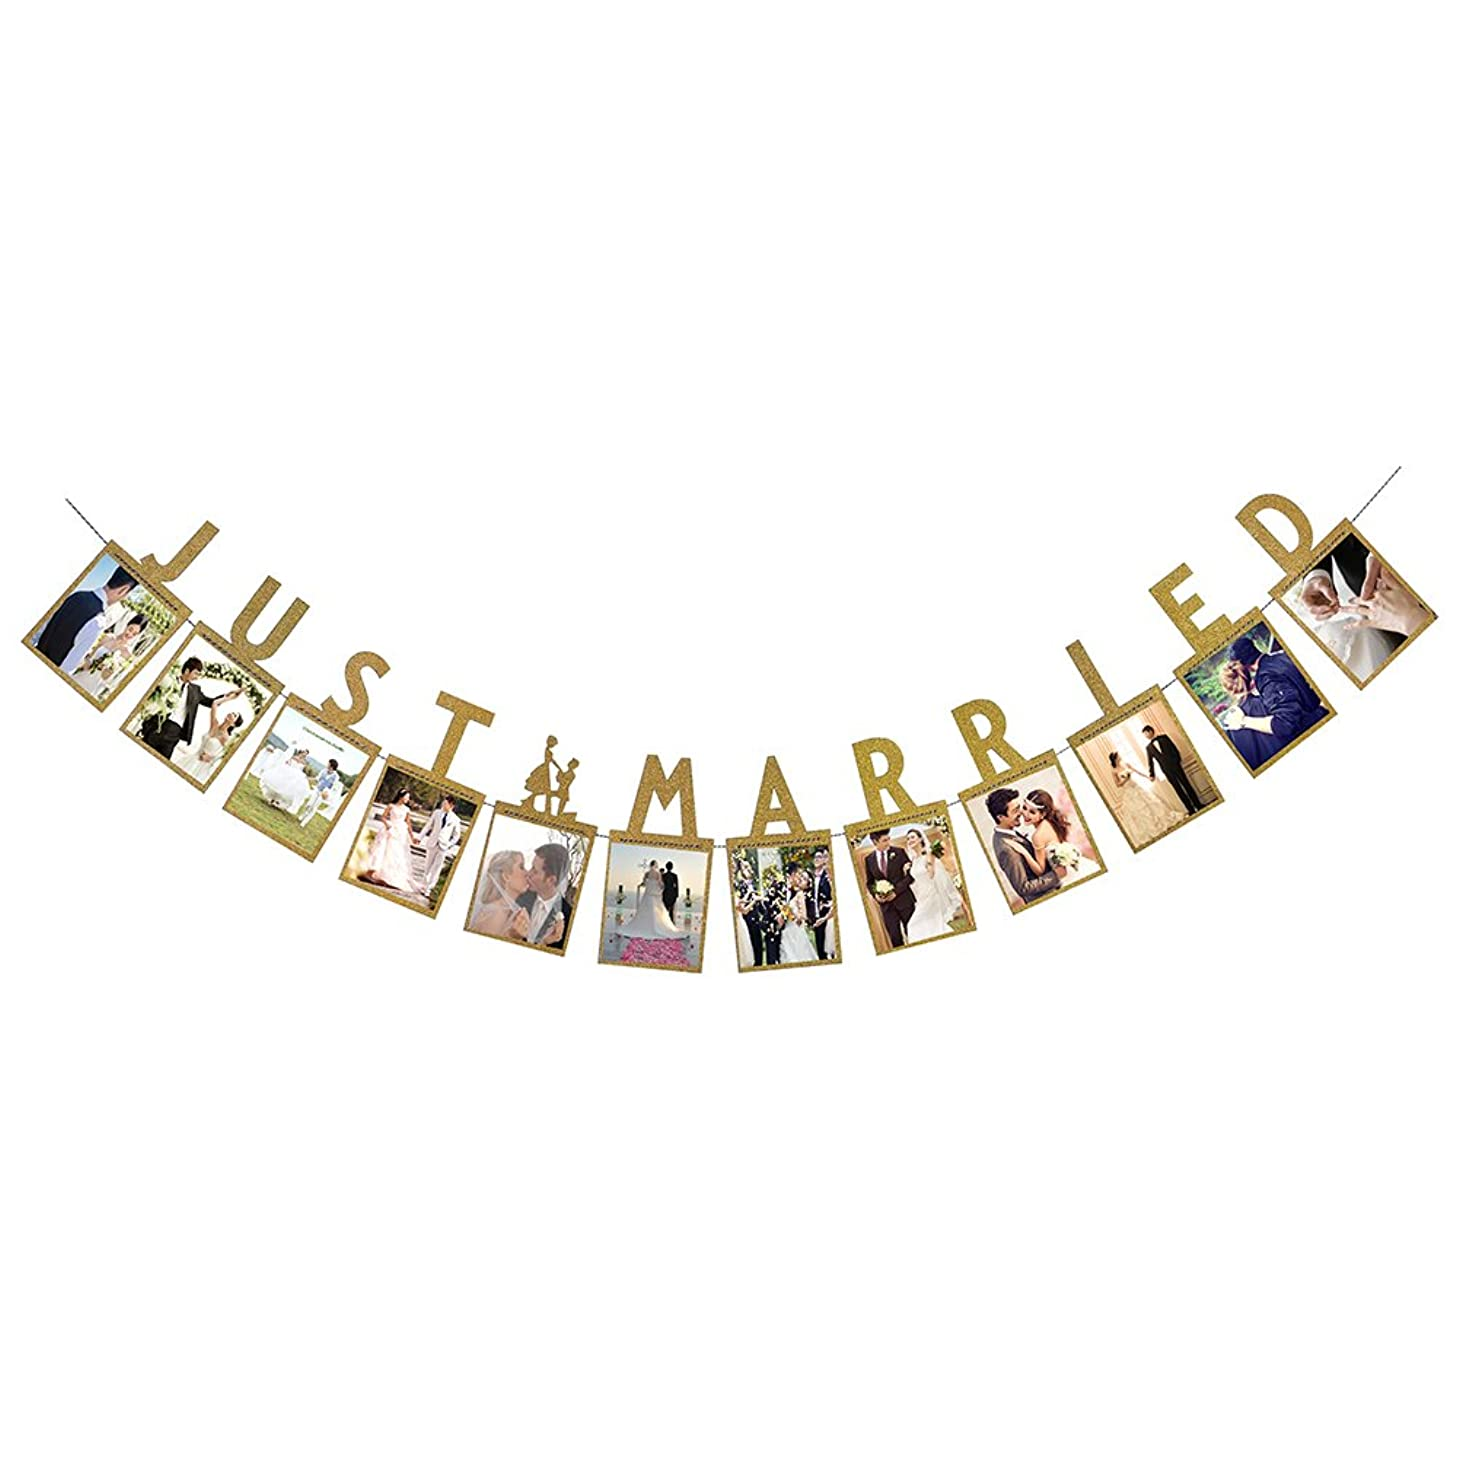 Hatcher lee Just Married Photo Banner Wedding Decor Bunting Photo Booth Props Signs Garland Bridal Shower Decoration Gold